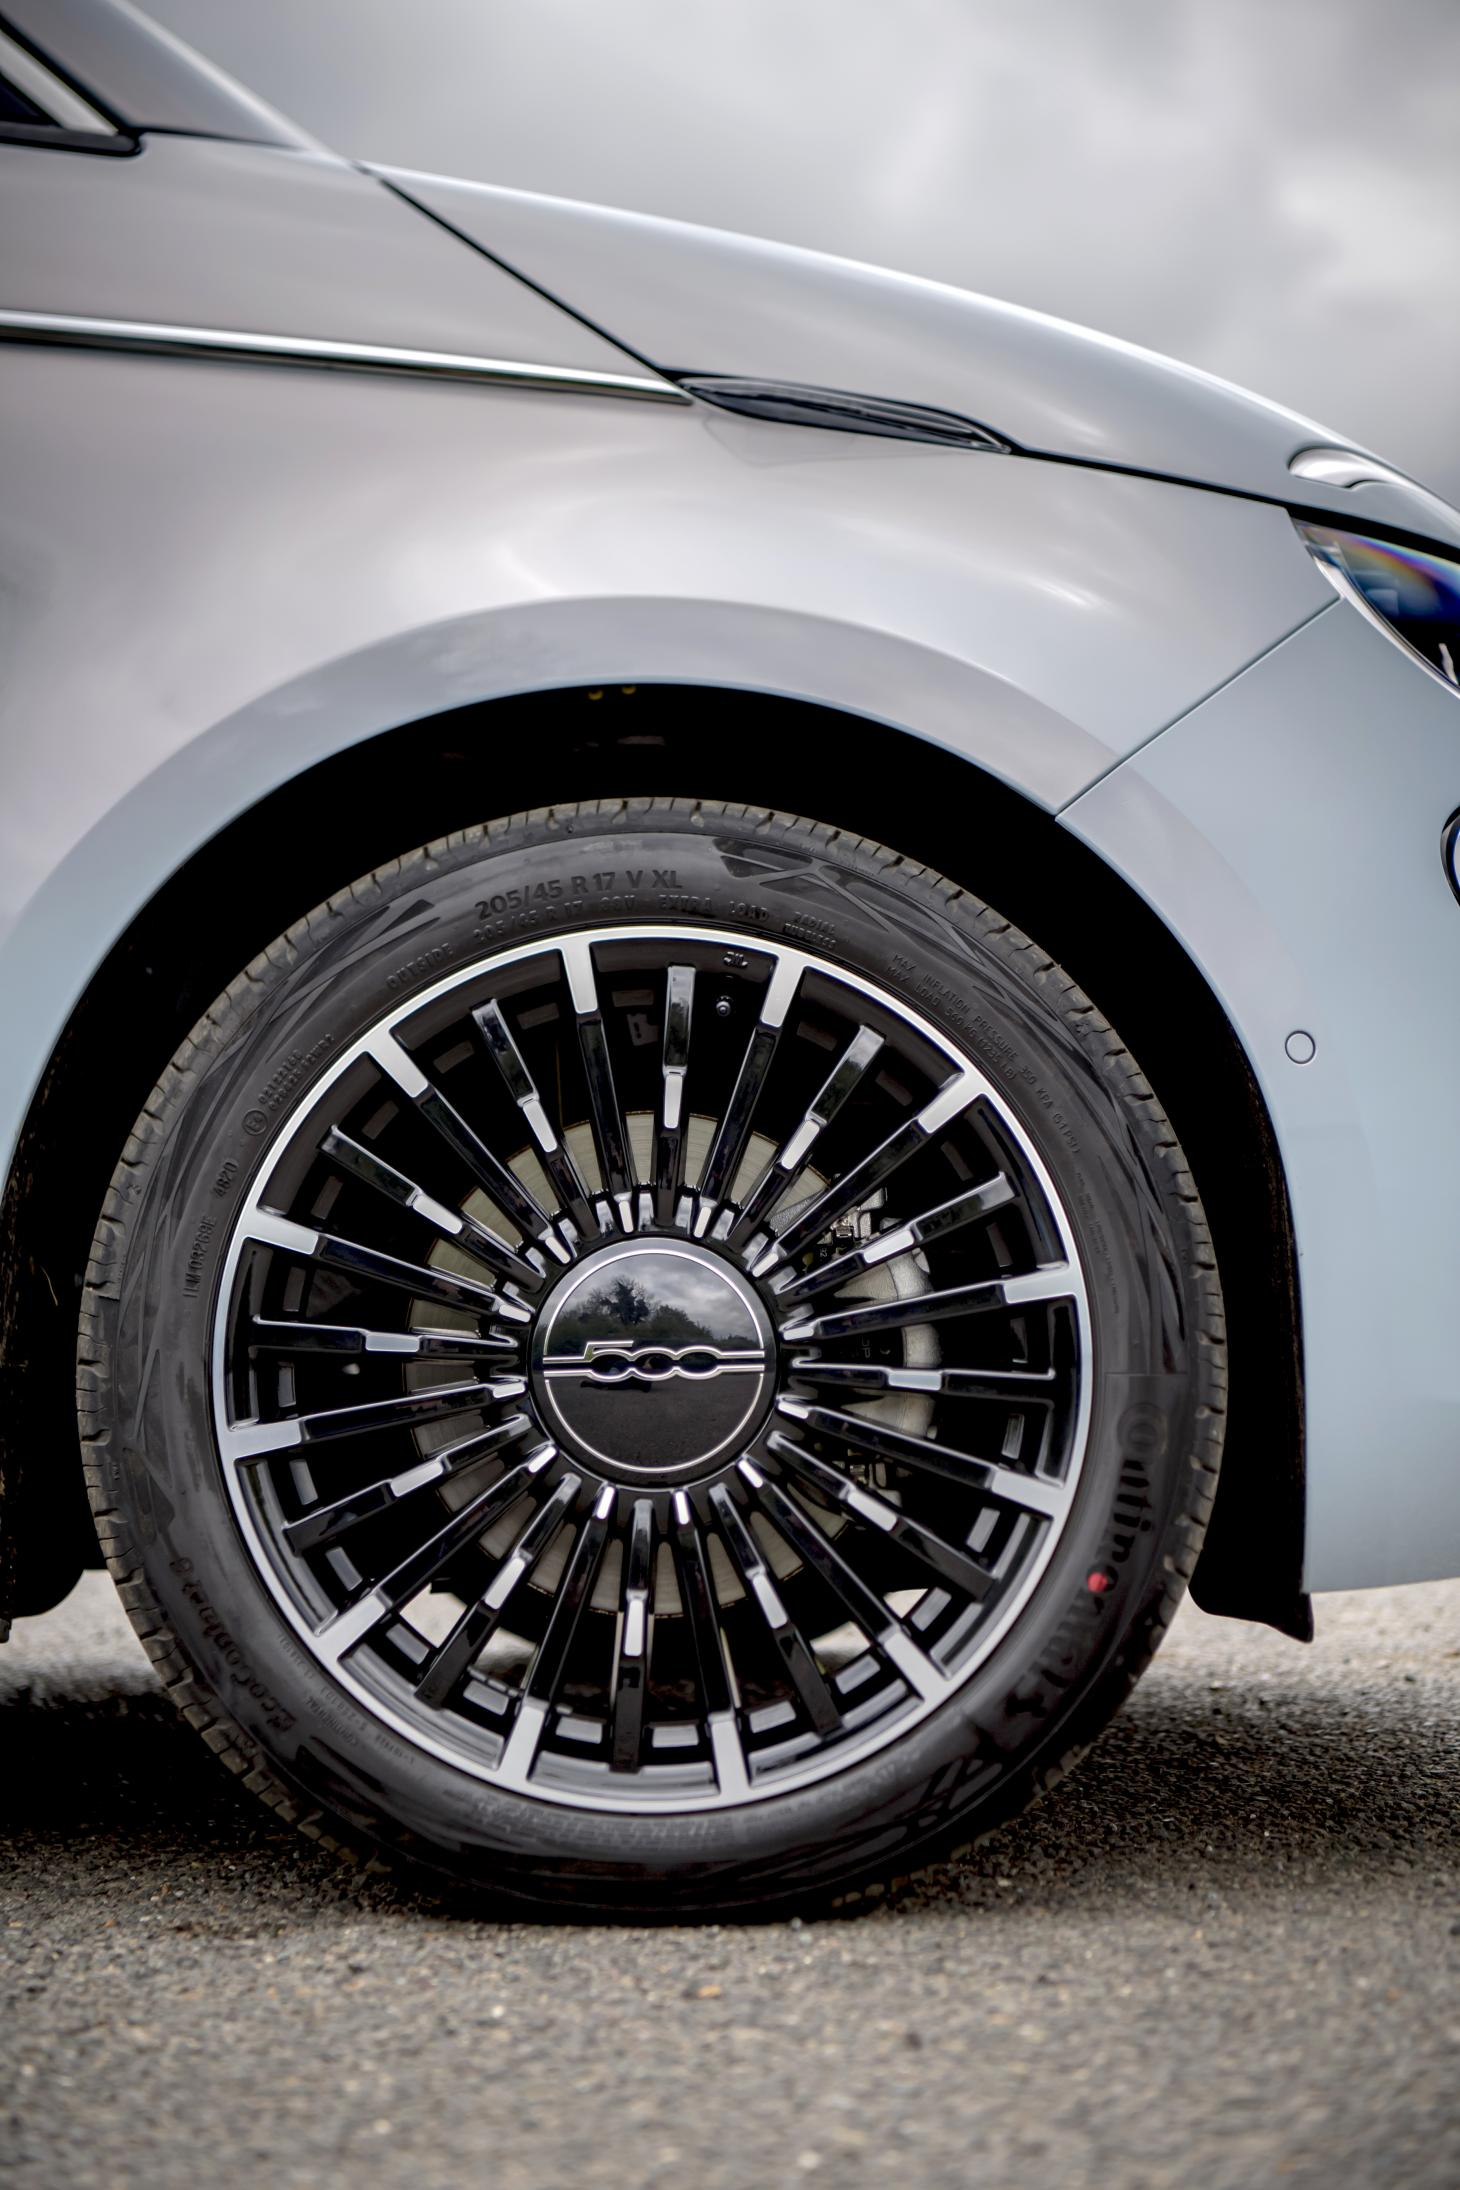 Design details of the Fiat New 500